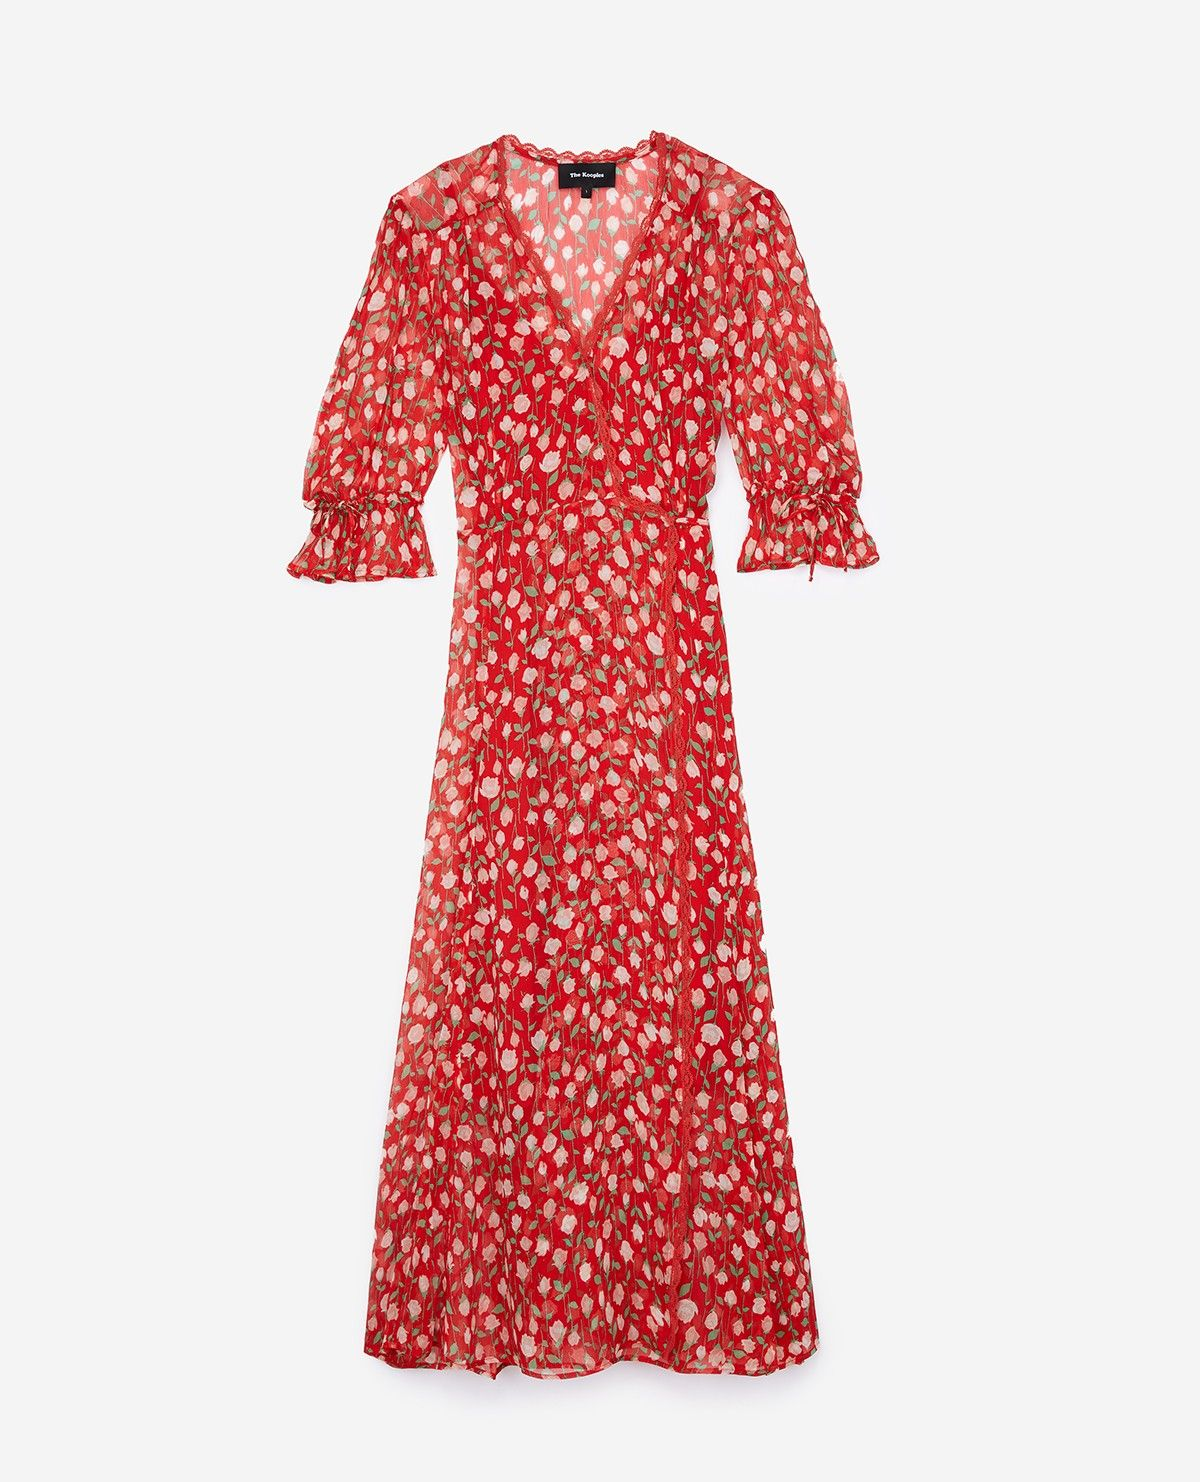 867a7f3f181 Rosa Rossa long red dress - THE KOOPLES | Style | Dresses, Fashion ...